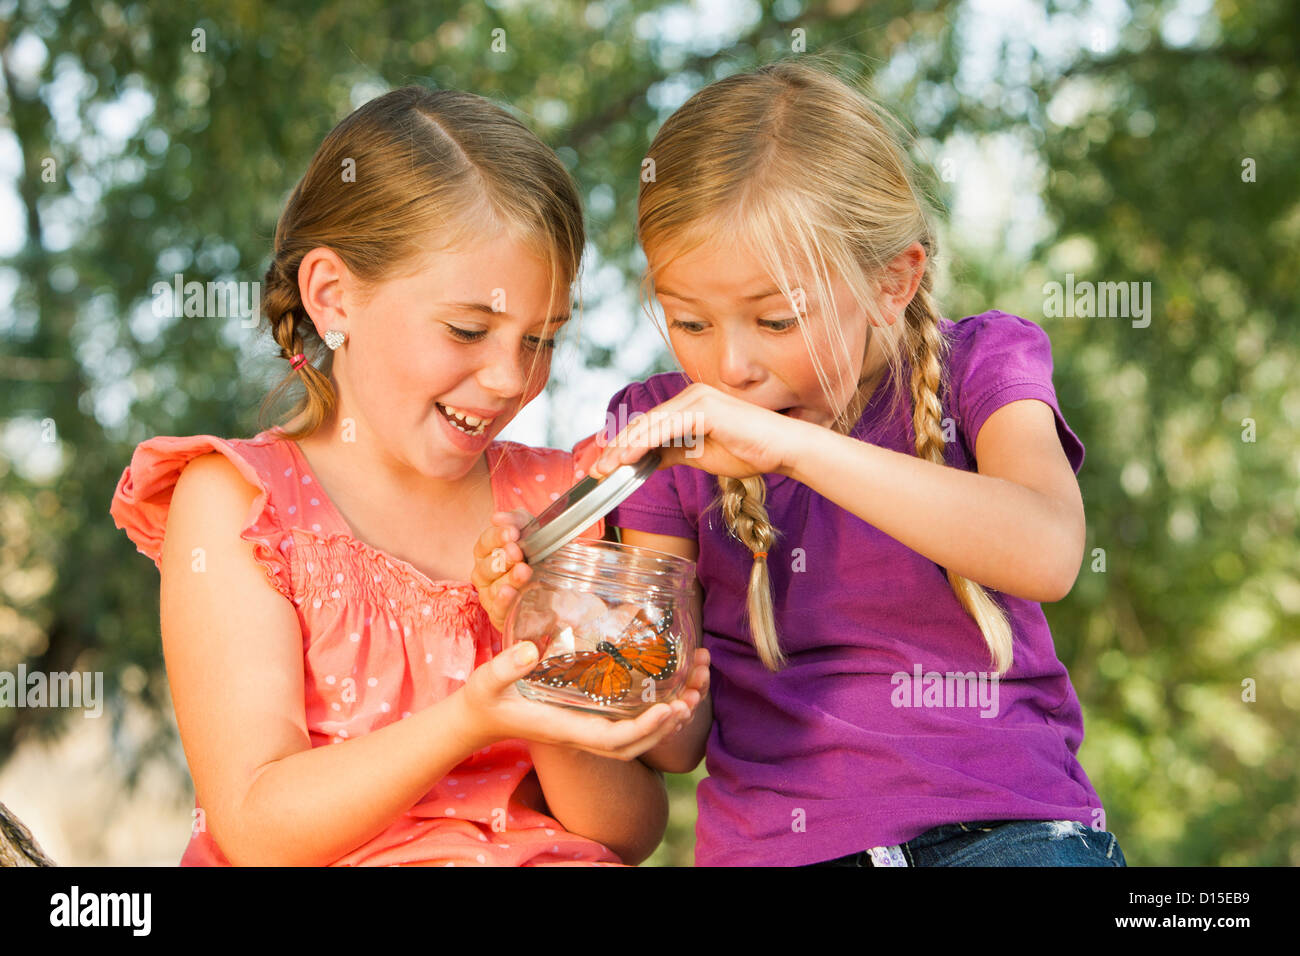 USA, Utah, Lehi, Two girls (4-5, 6-7) fascinated by butterfly in jar - Stock Image